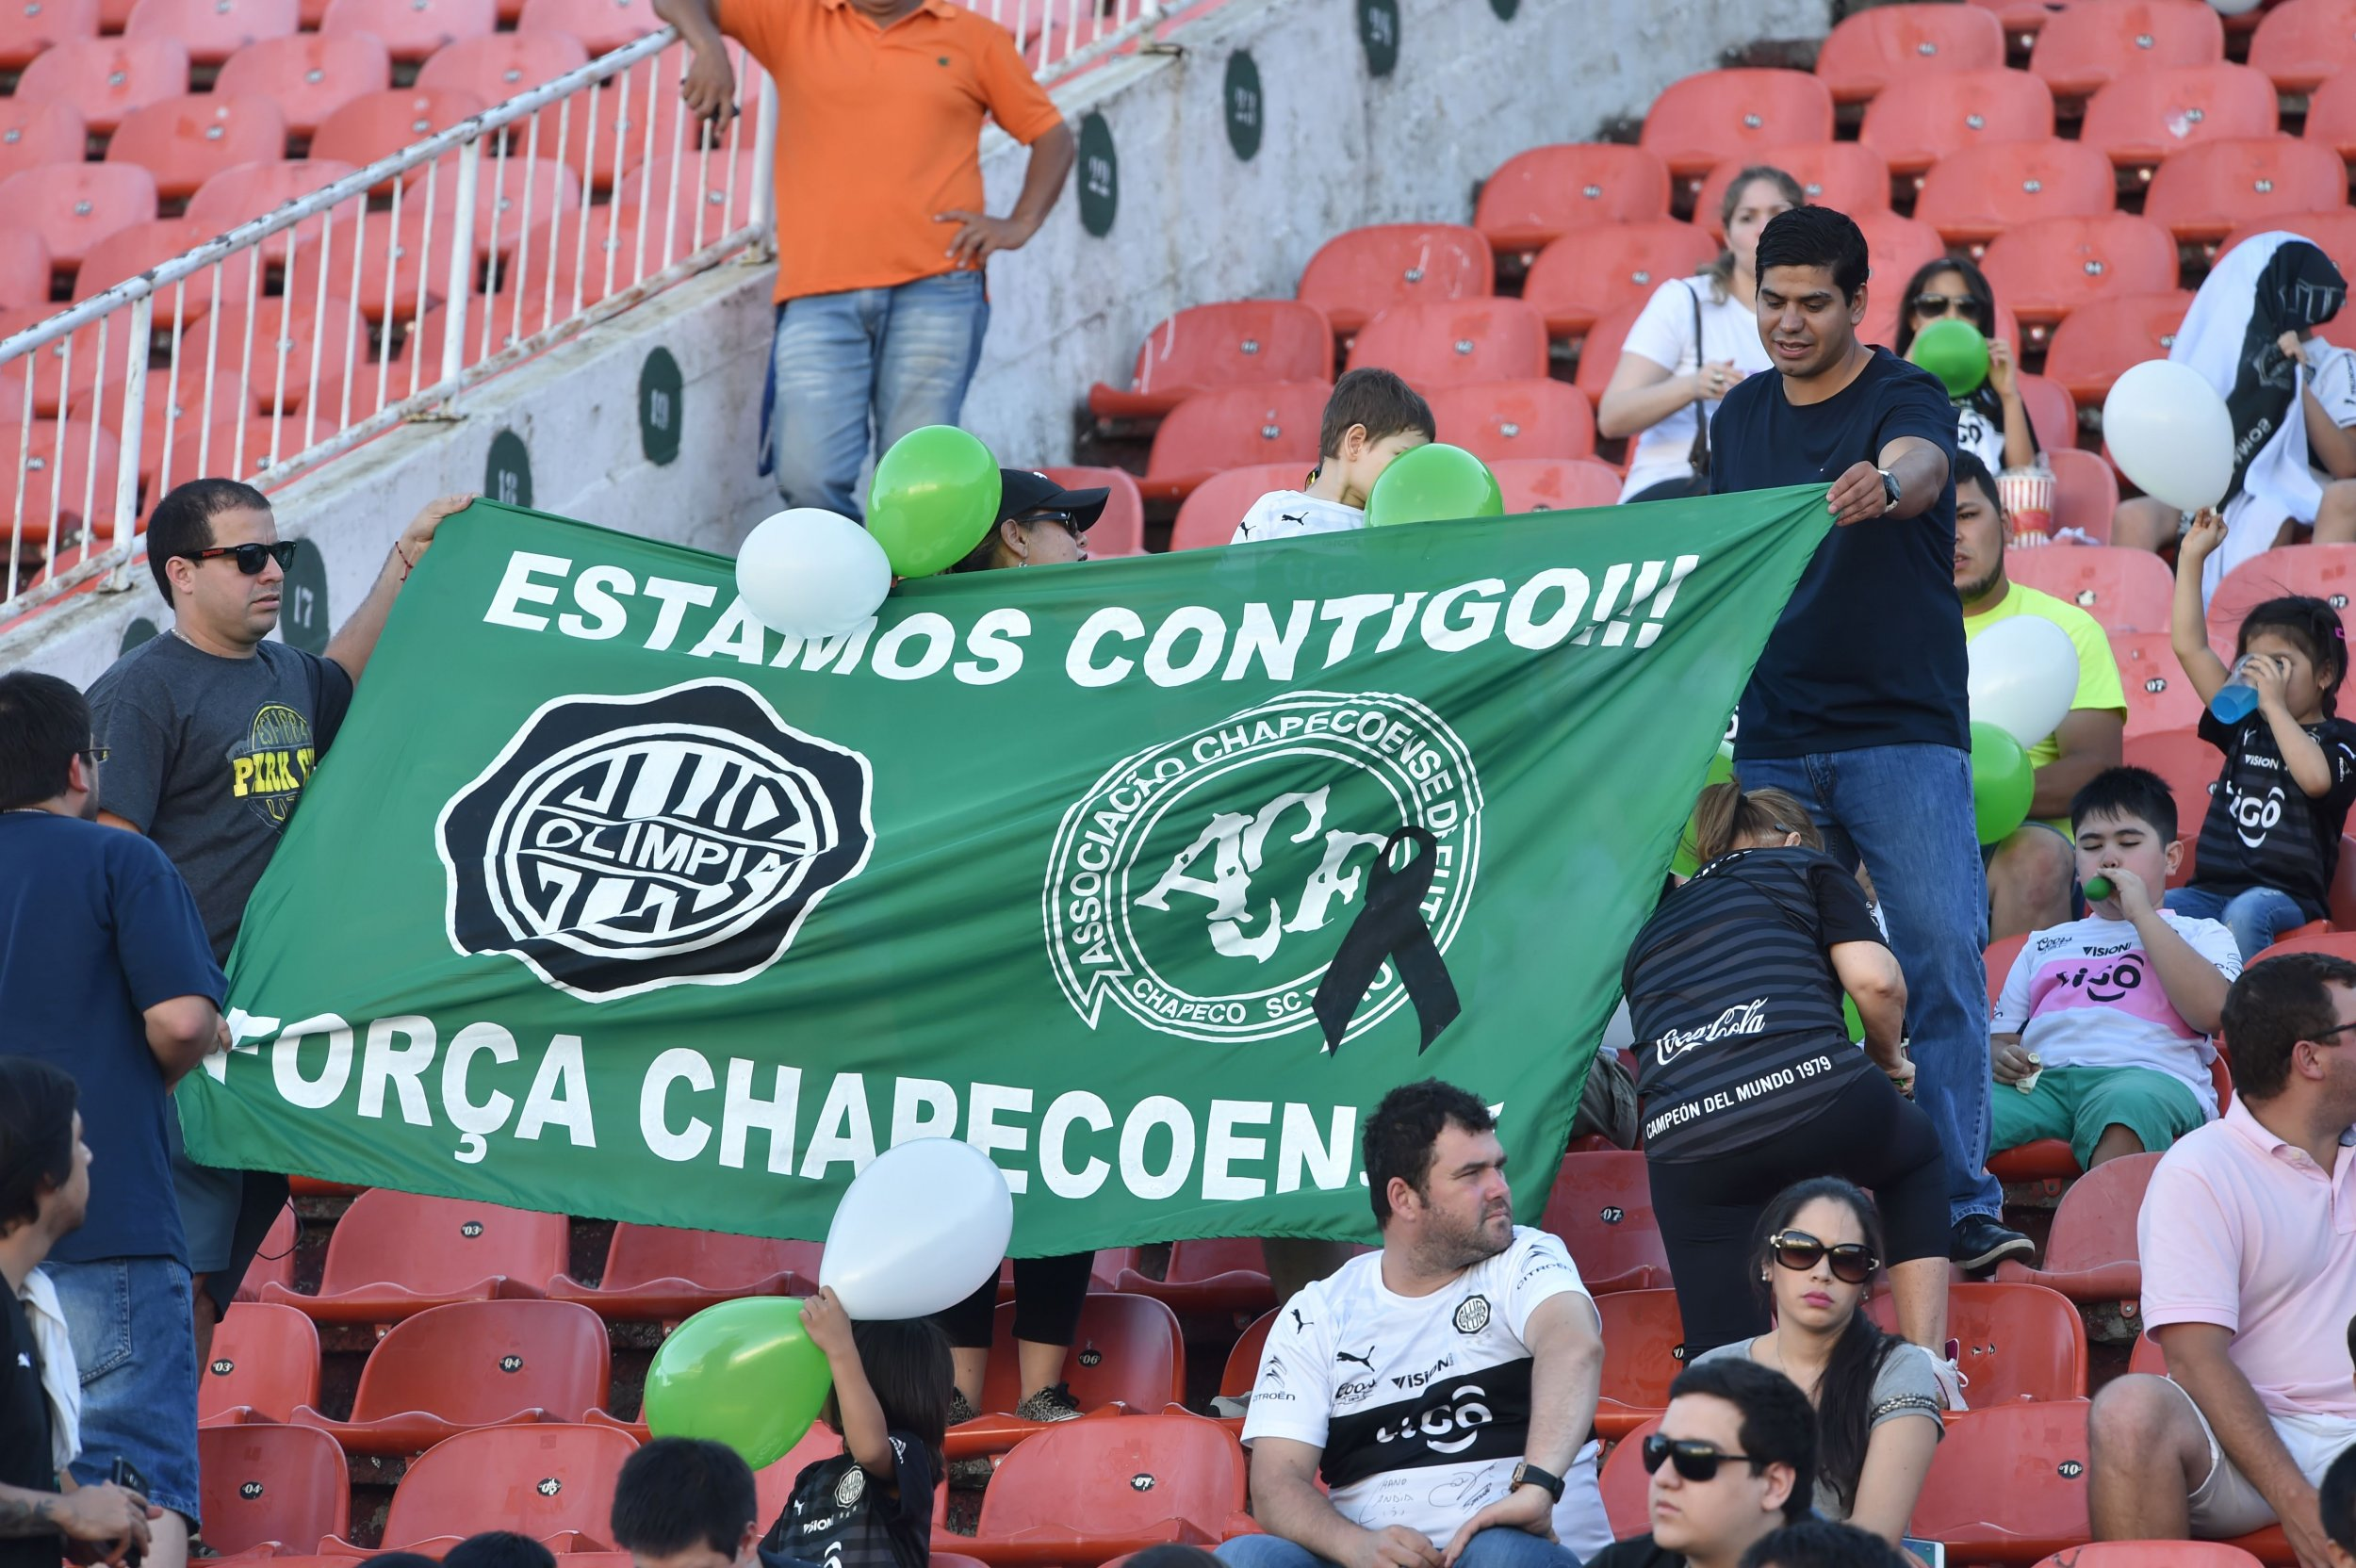 Paraguay's Olimpia football club pays tribute to Chapecoense.